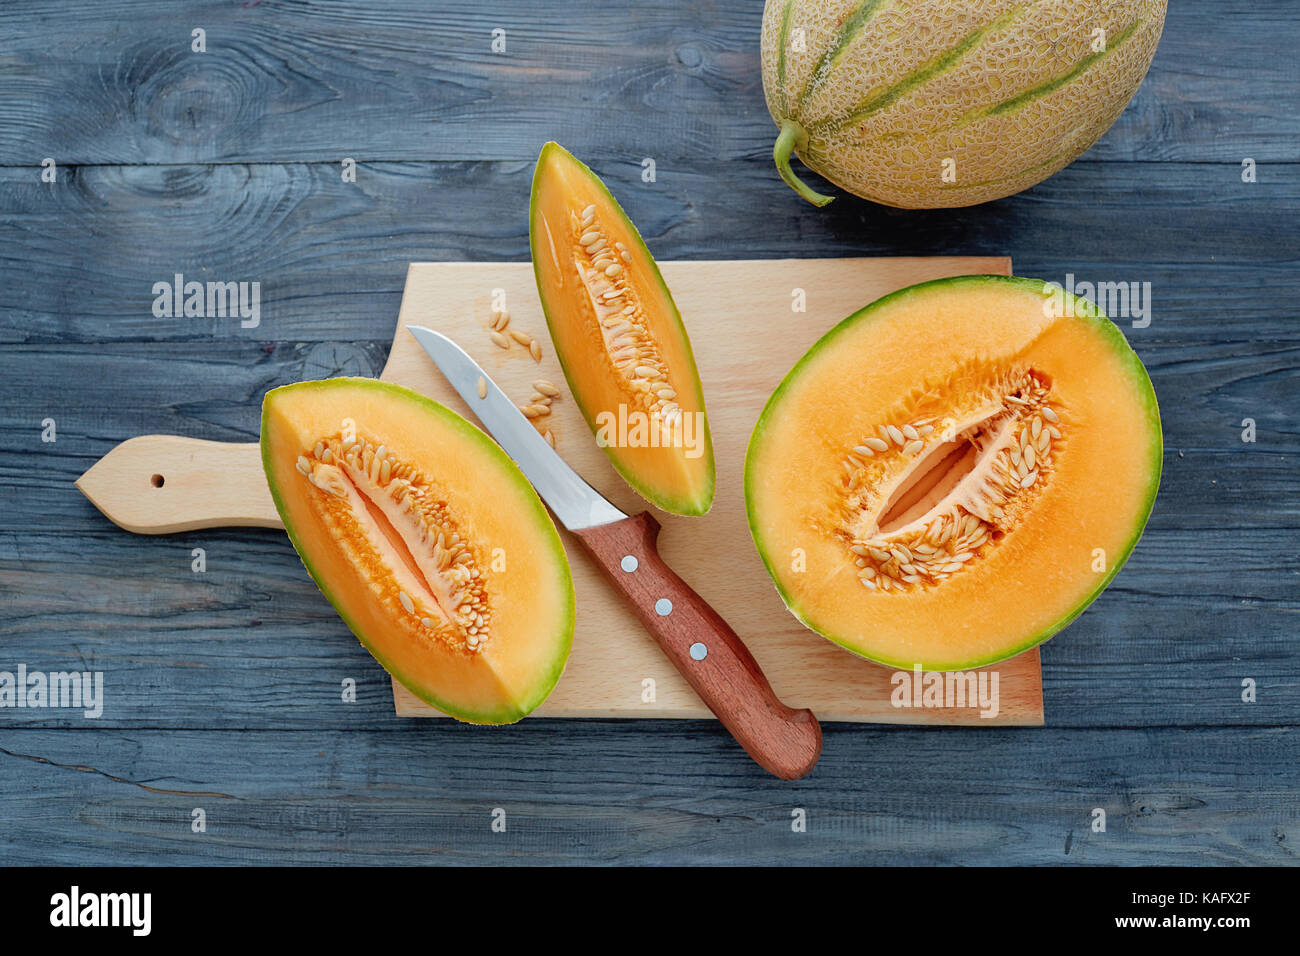 Fresh cantaloupe cut into pieces on wooden table. Stock Photo